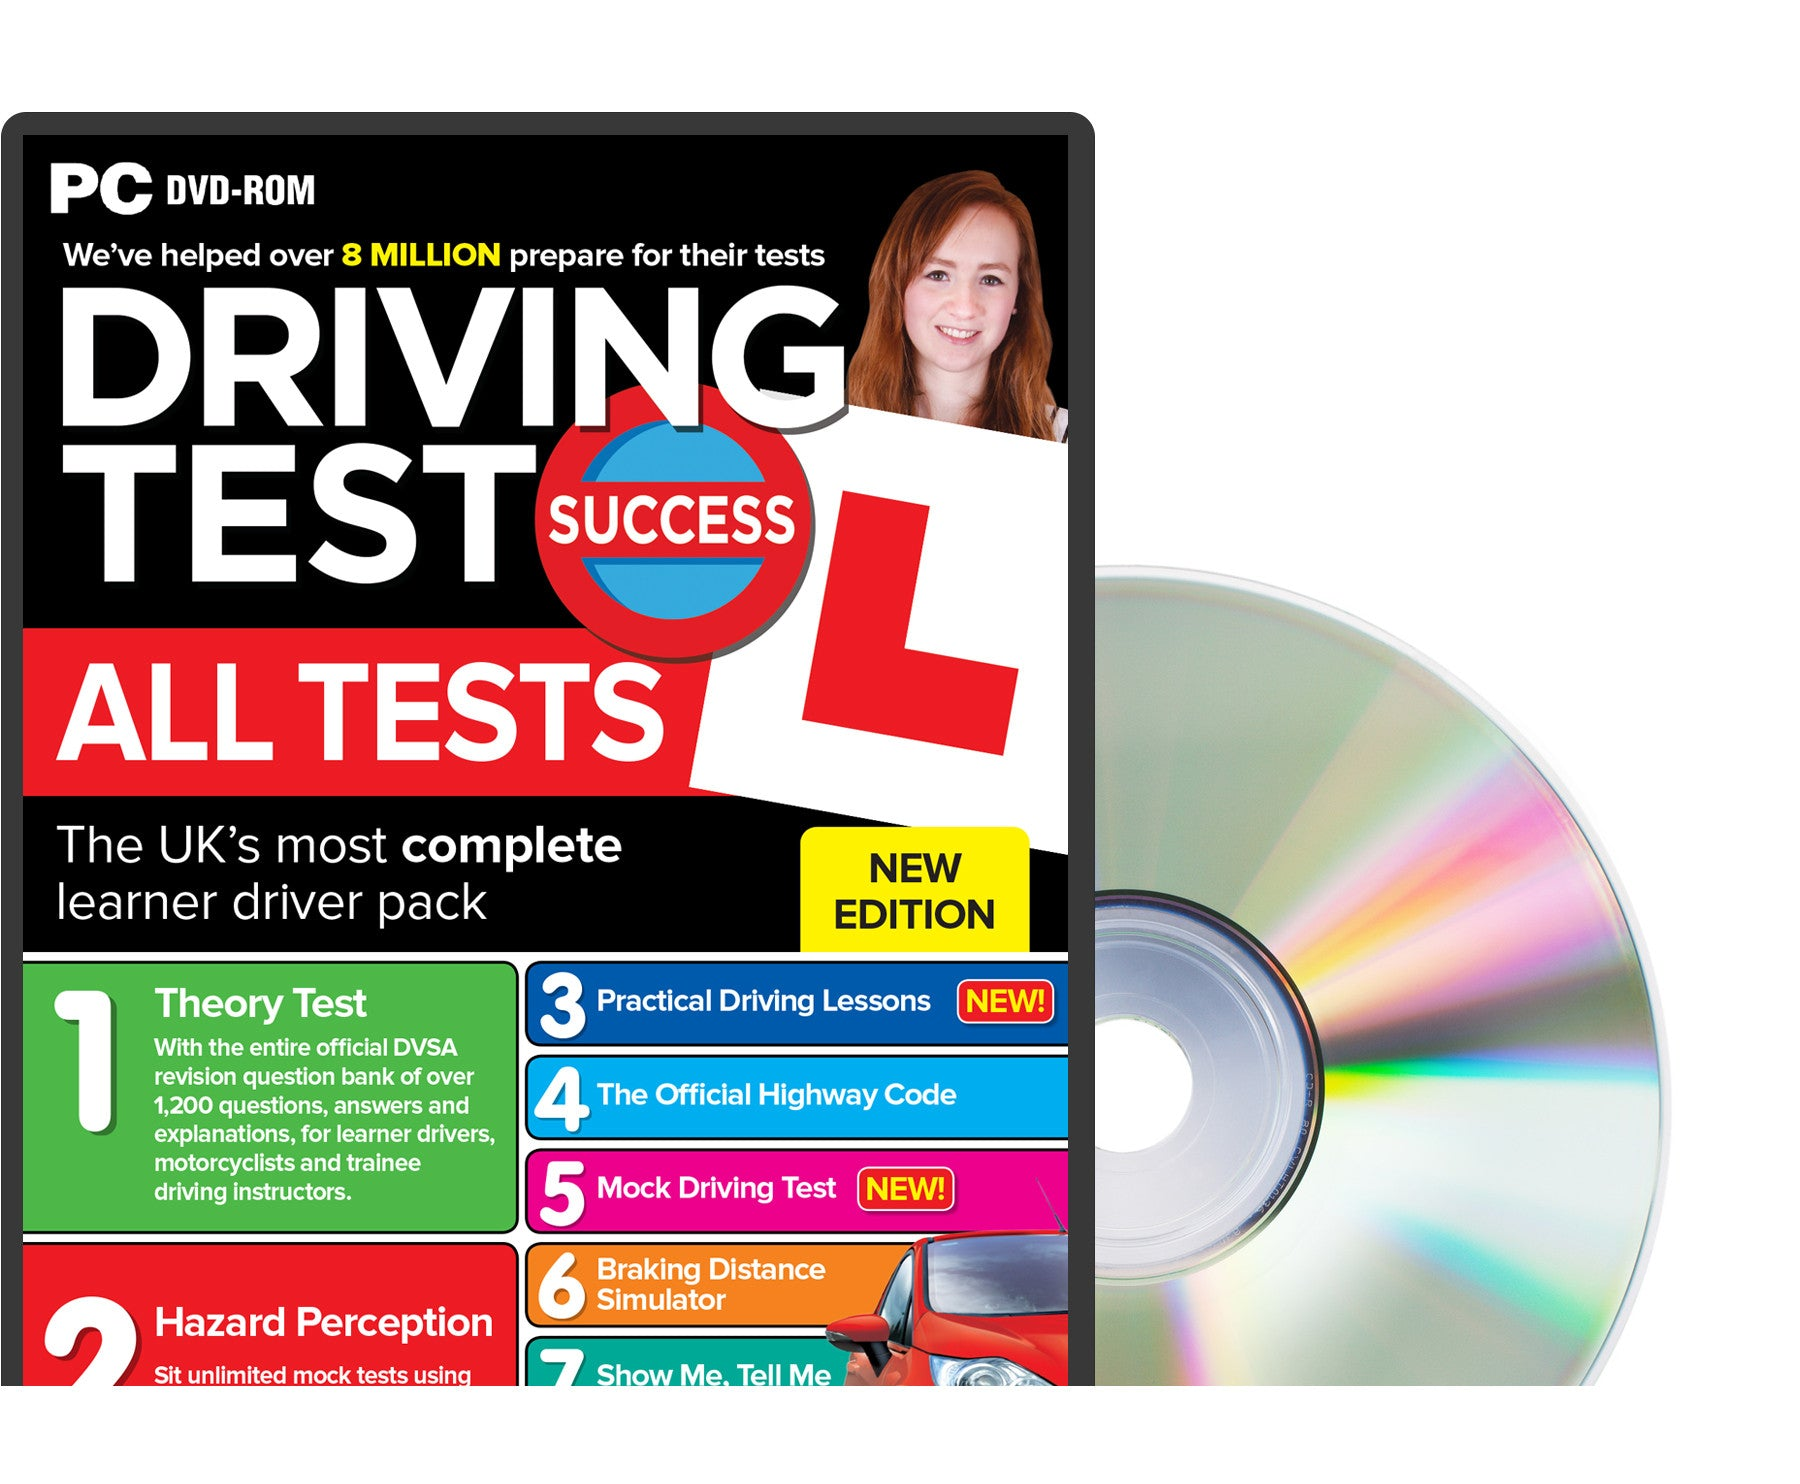 Dsa theory test for car drivers no-cd crack download.